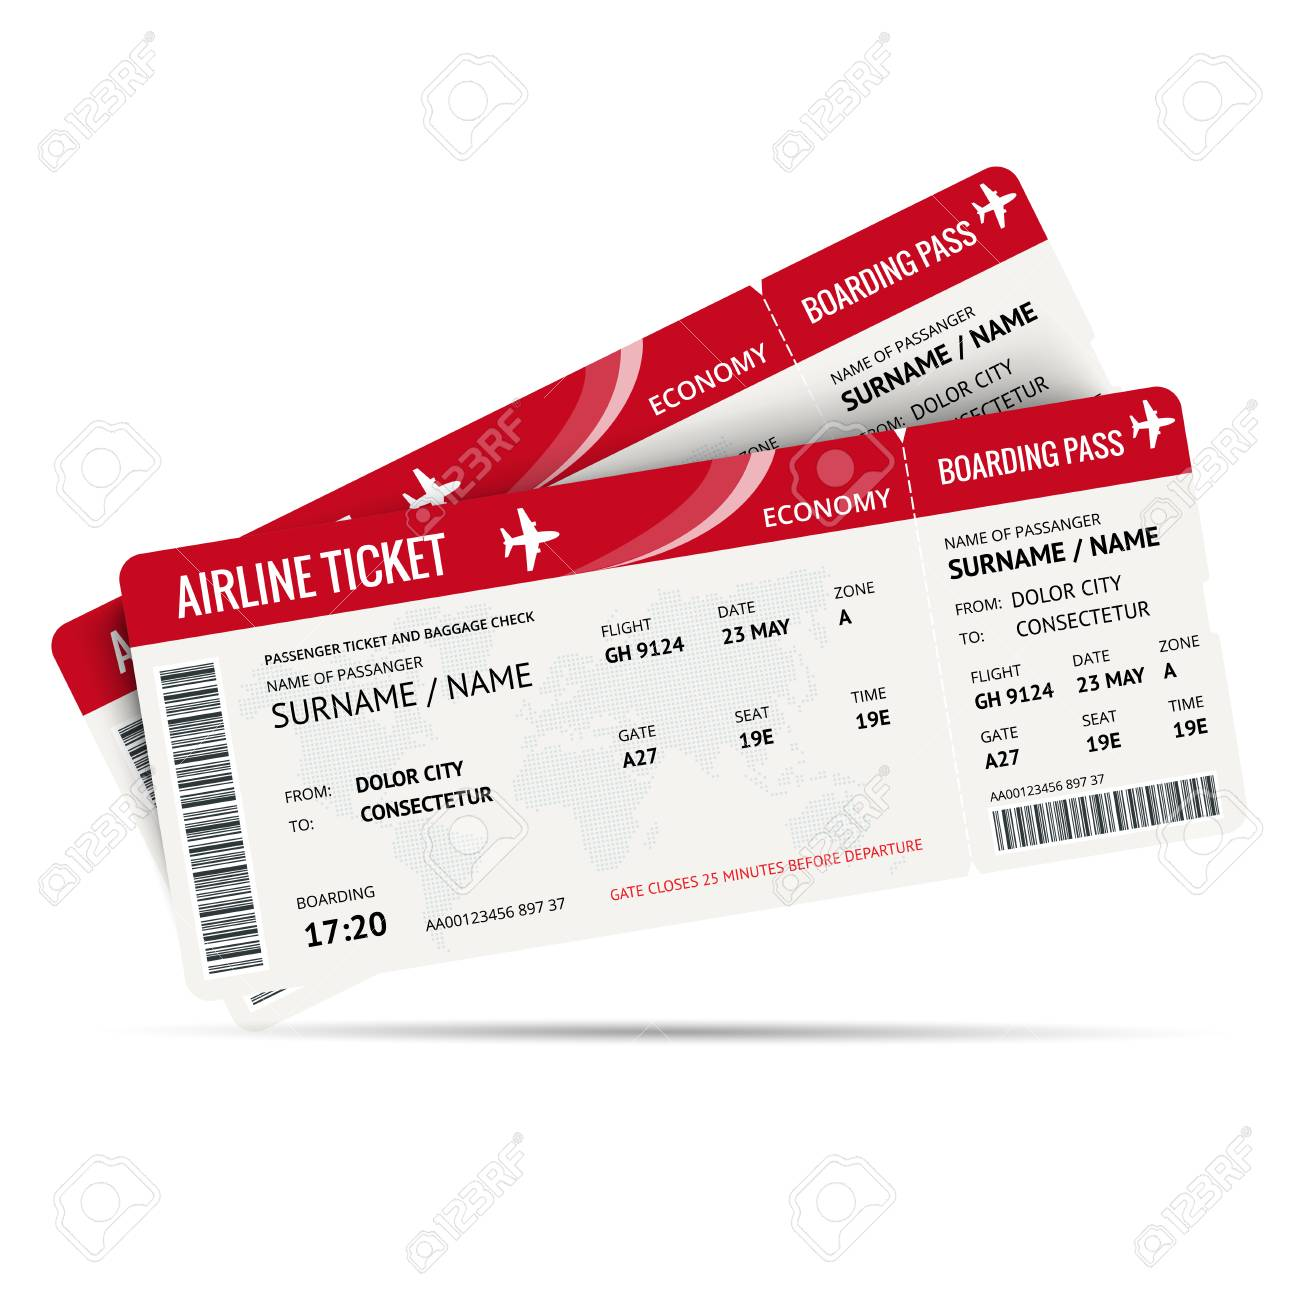 Airline Ticket Or Boarding Pass For Traveling By Plane Isolated.. Royalty  Free Cliparts, Vectors, And Stock Illustration. Image 78340614.